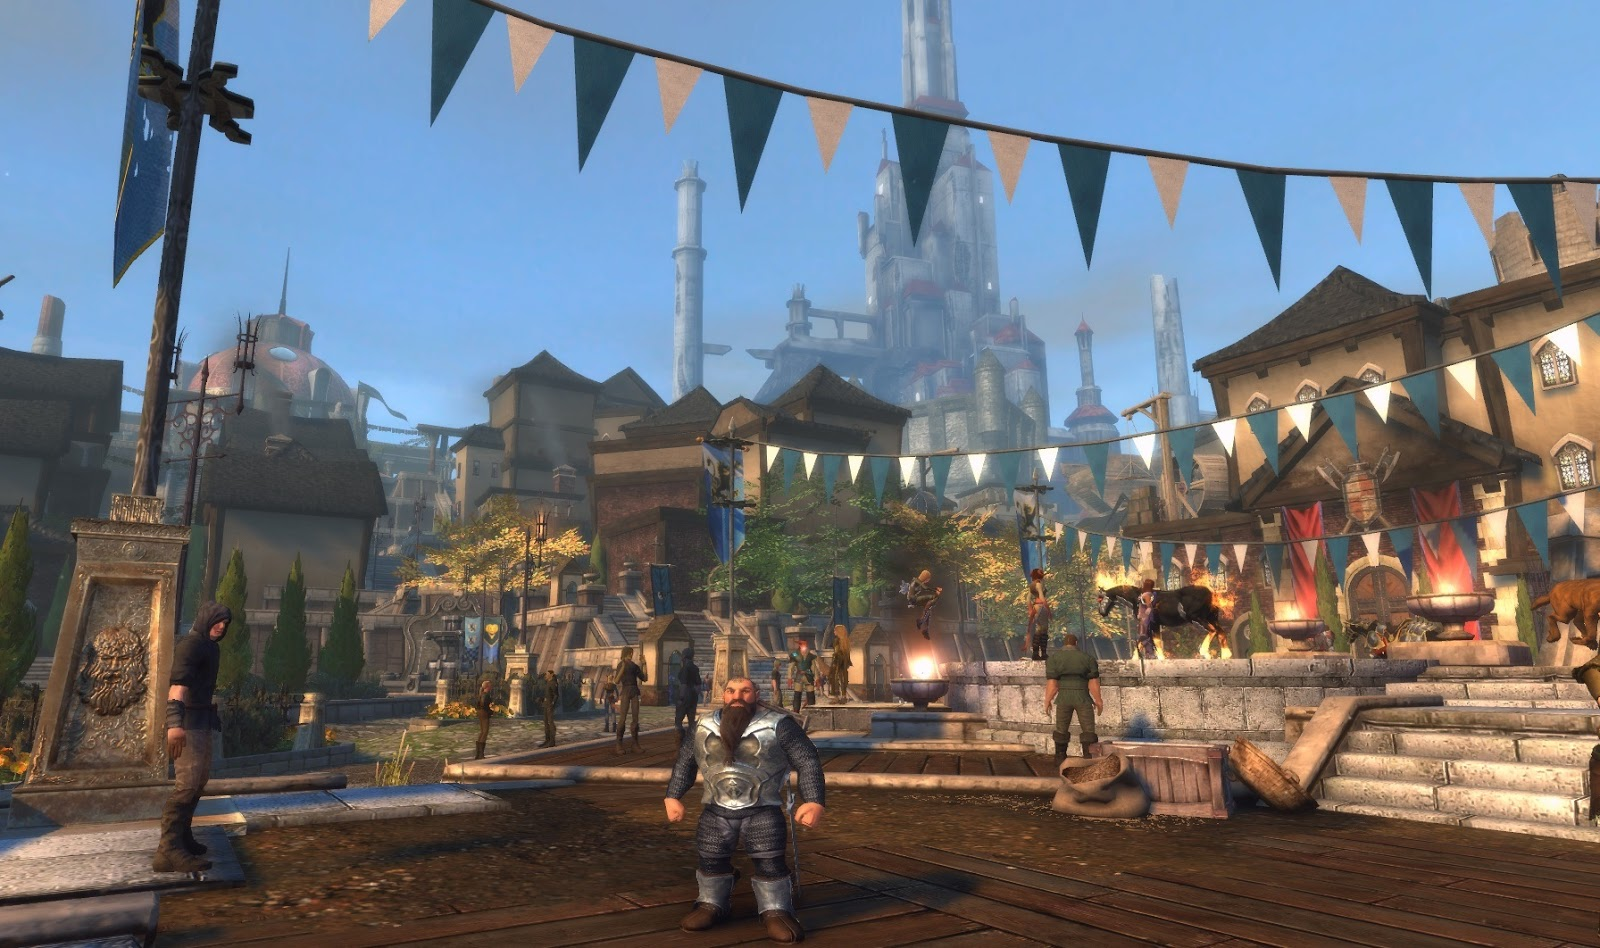 Inventory Full: Neverwinter, A Nose-Poking